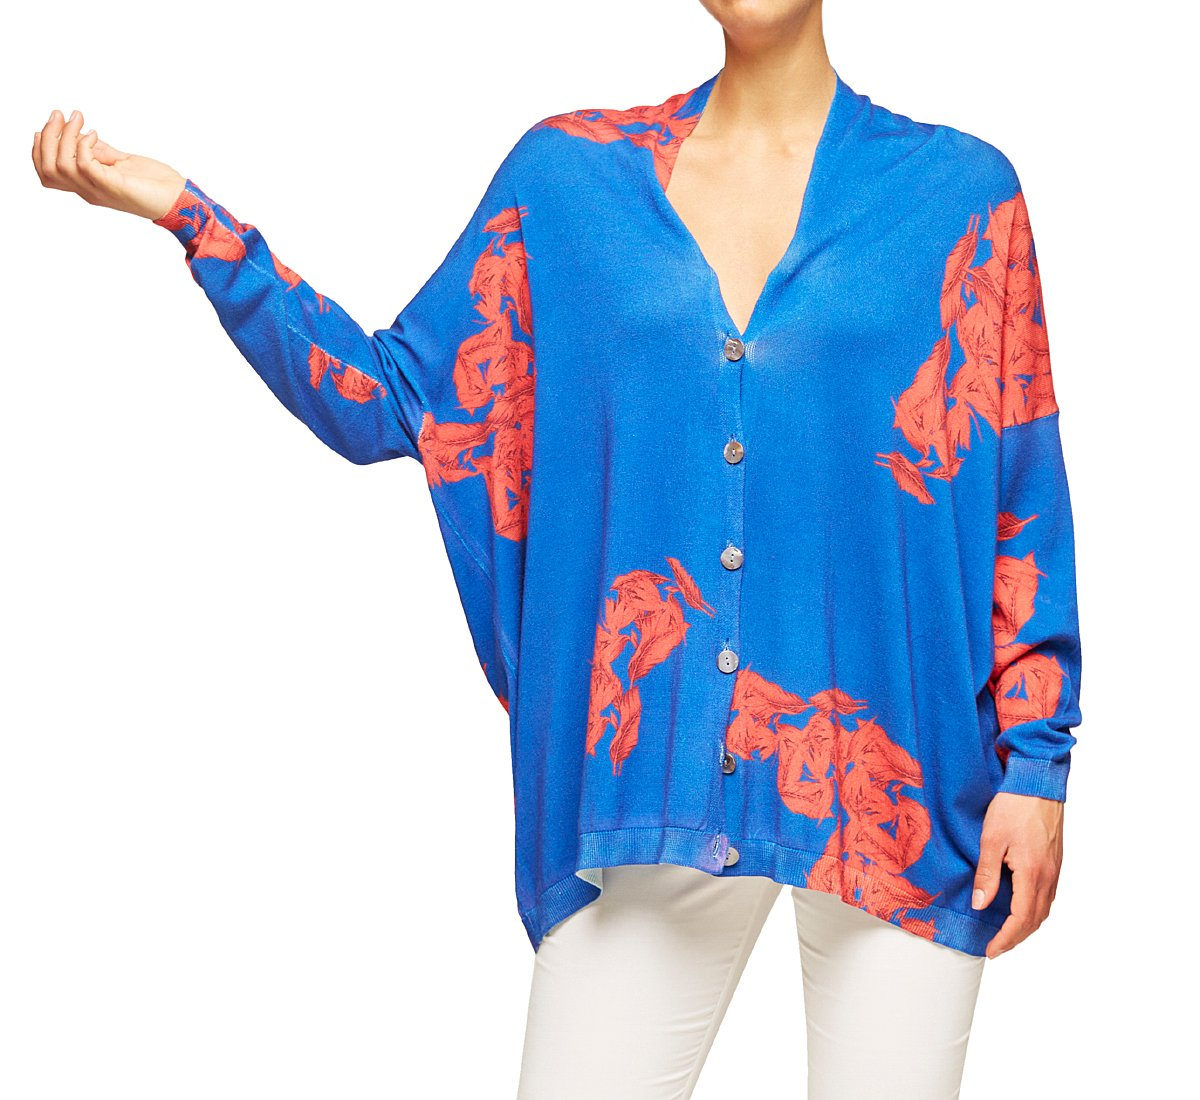 Extra-large cotton and viscose cardigan